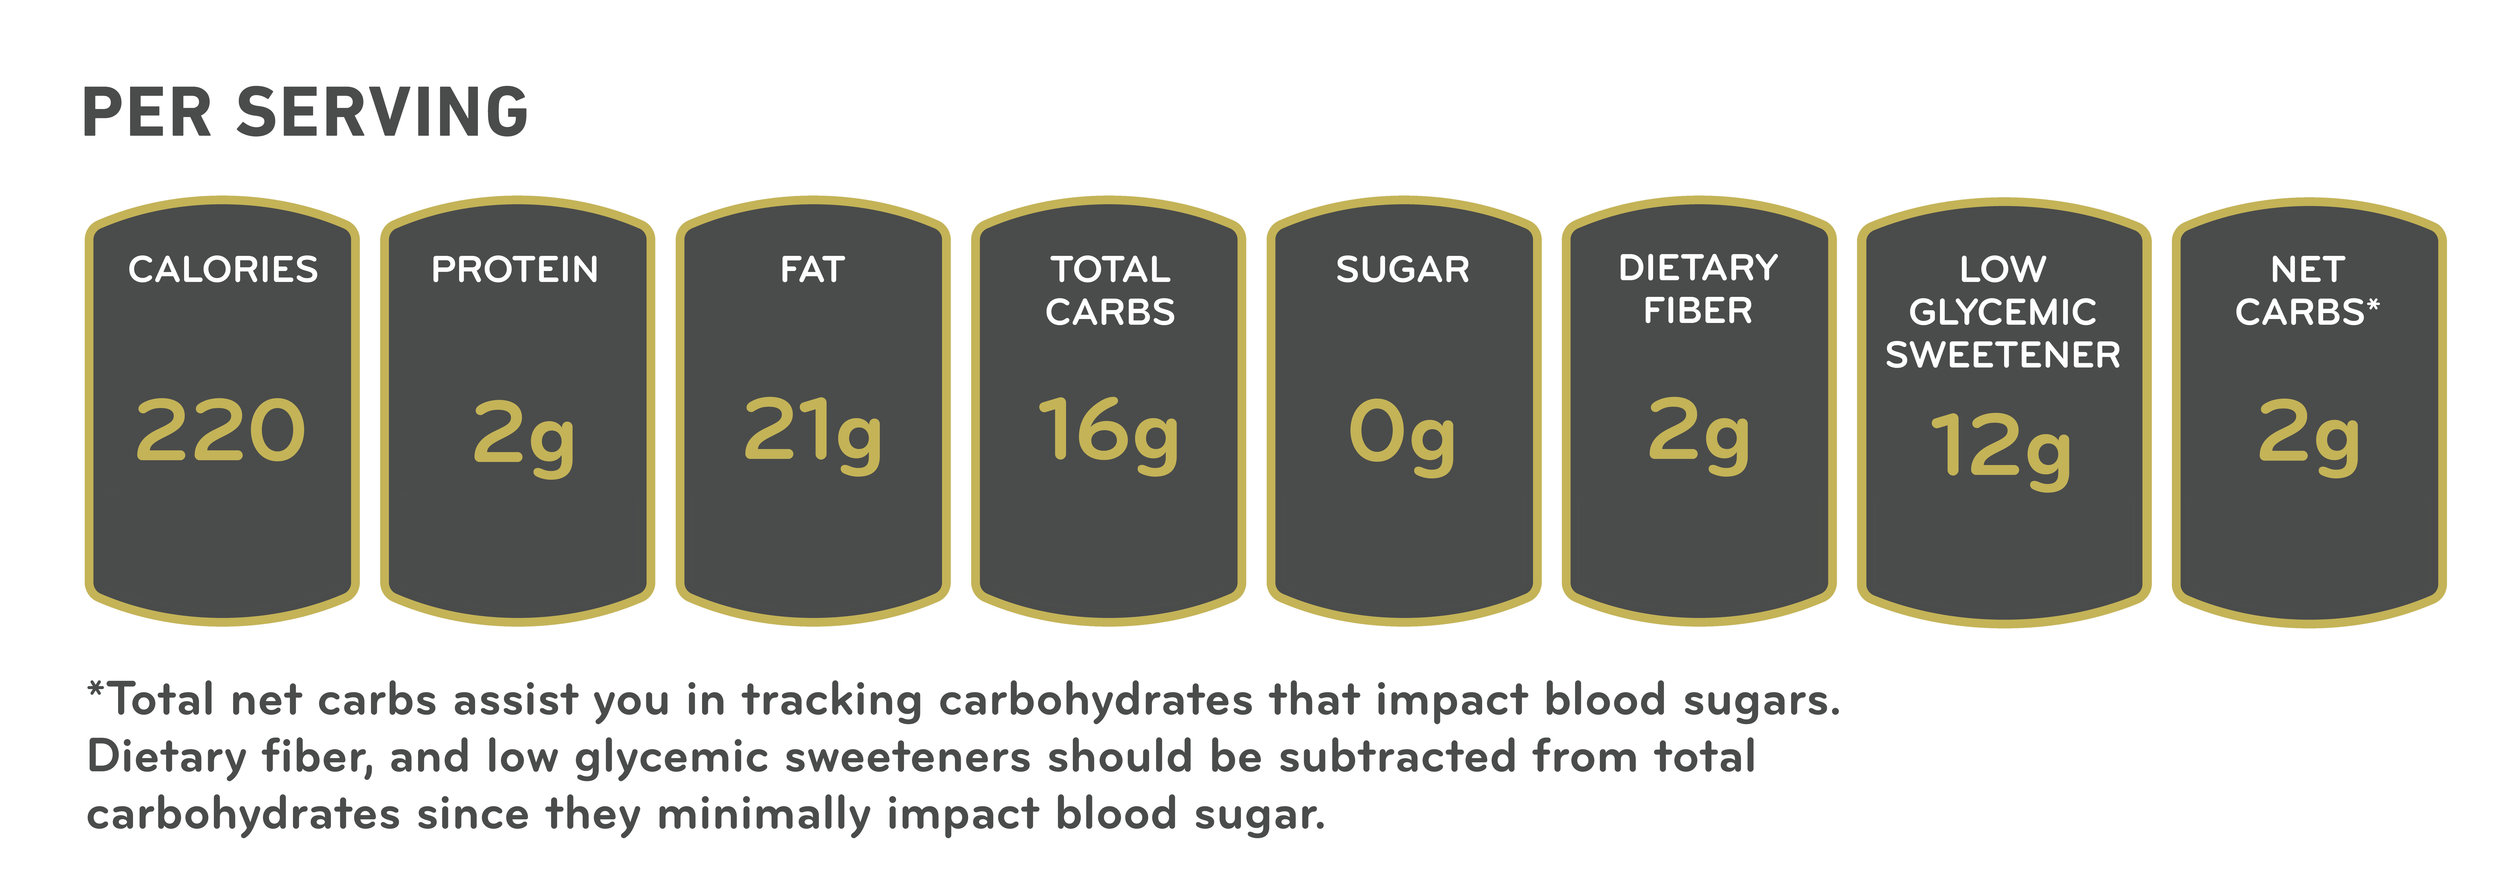 LOW CARB KETO QUICK AND EASY CHOCOLATE SAUCE RECIPE NUTRITION FACTS.jpg